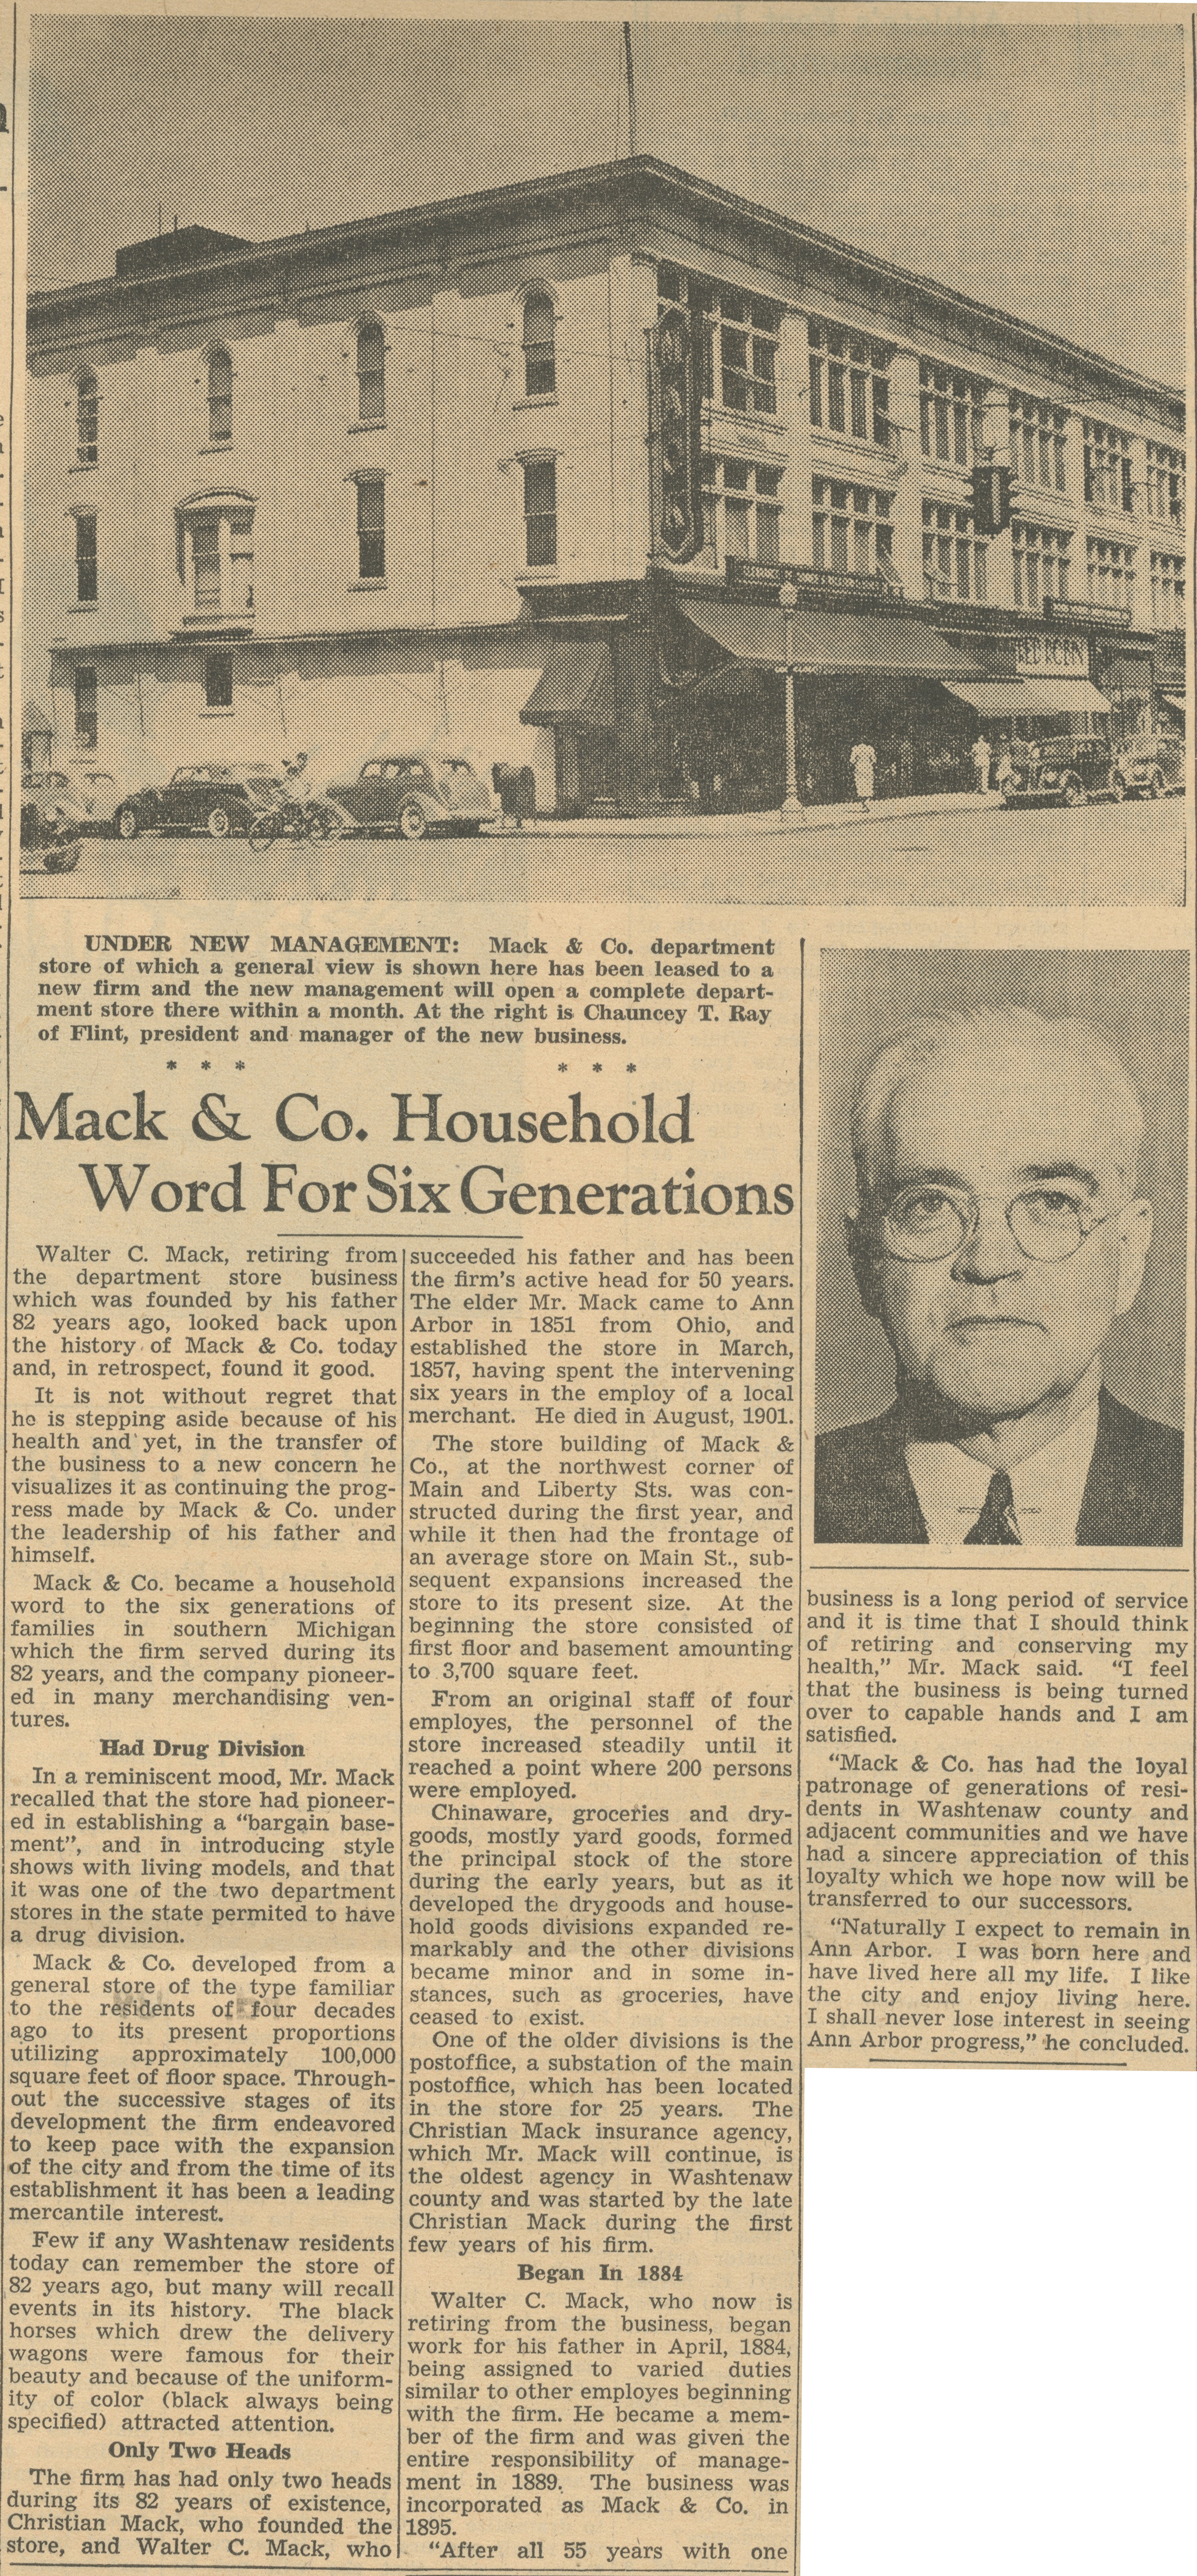 Mack & Co. Household Word For Six Generations image